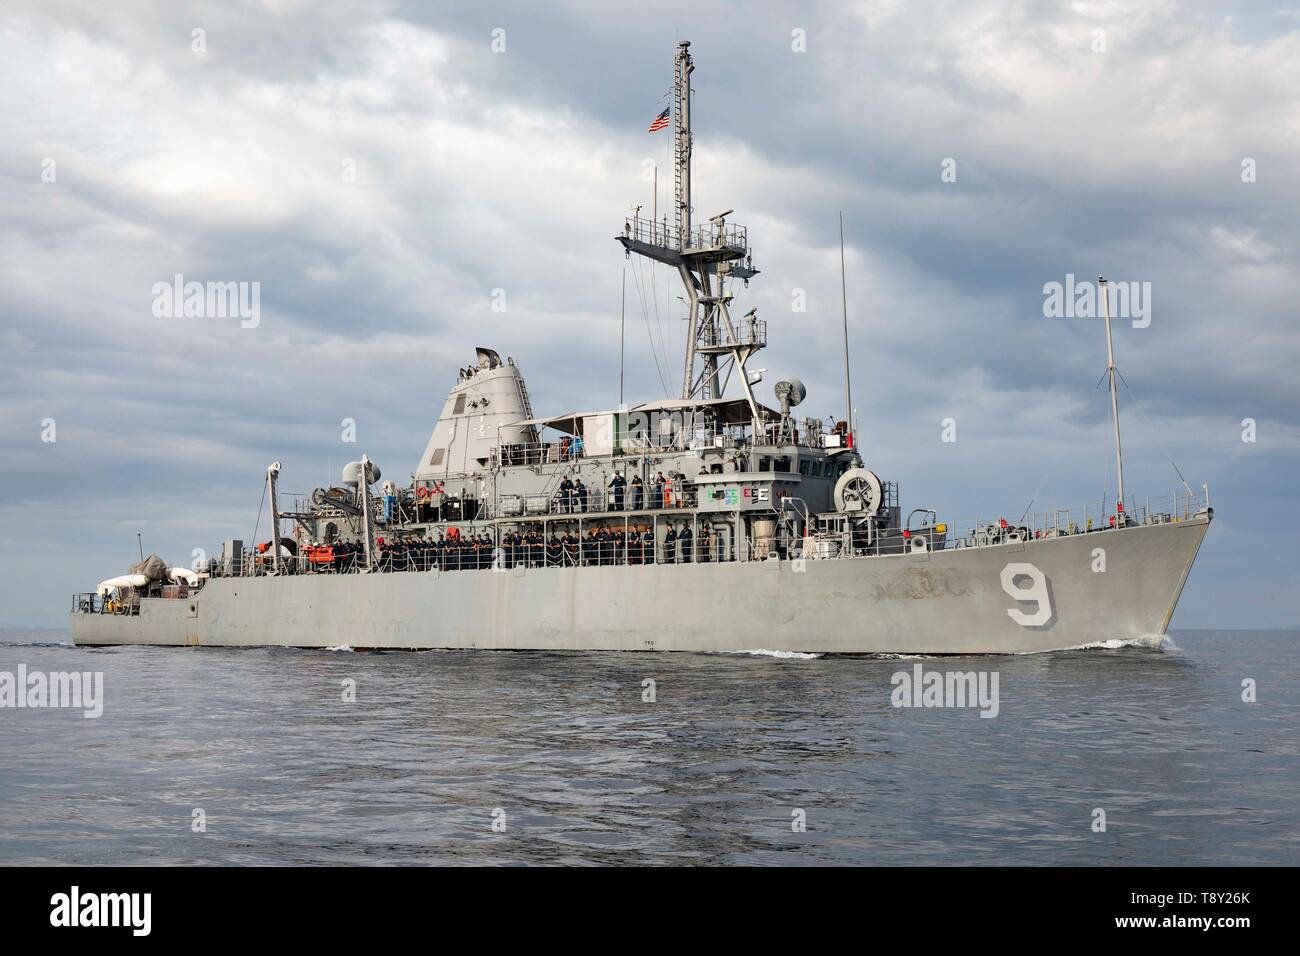 The U.S. Navy Avenger-class mine counter measure ship USS Pioneer during patrol May 8, 2019 in the South China Sea. - Stock Image